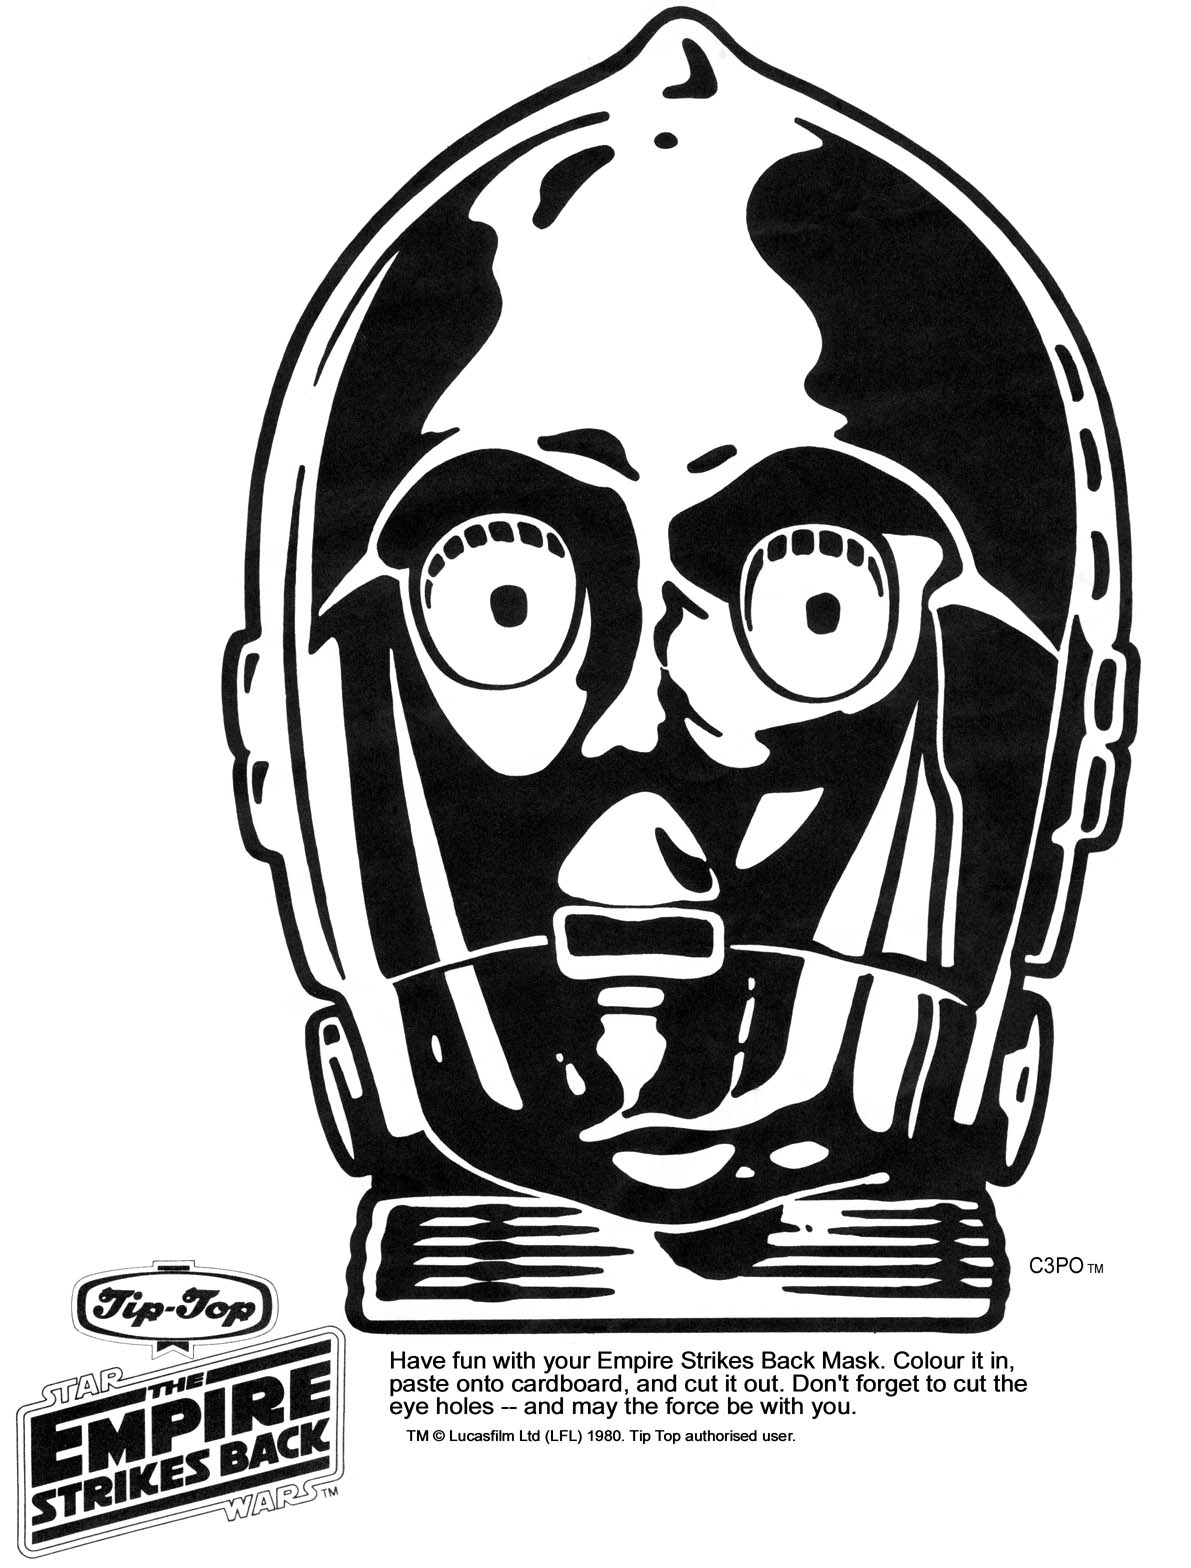 graphic regarding Star Wars Printable Masks identified as Ks Star Foundation - Star Wars Printable Masks - Kaplans Web site